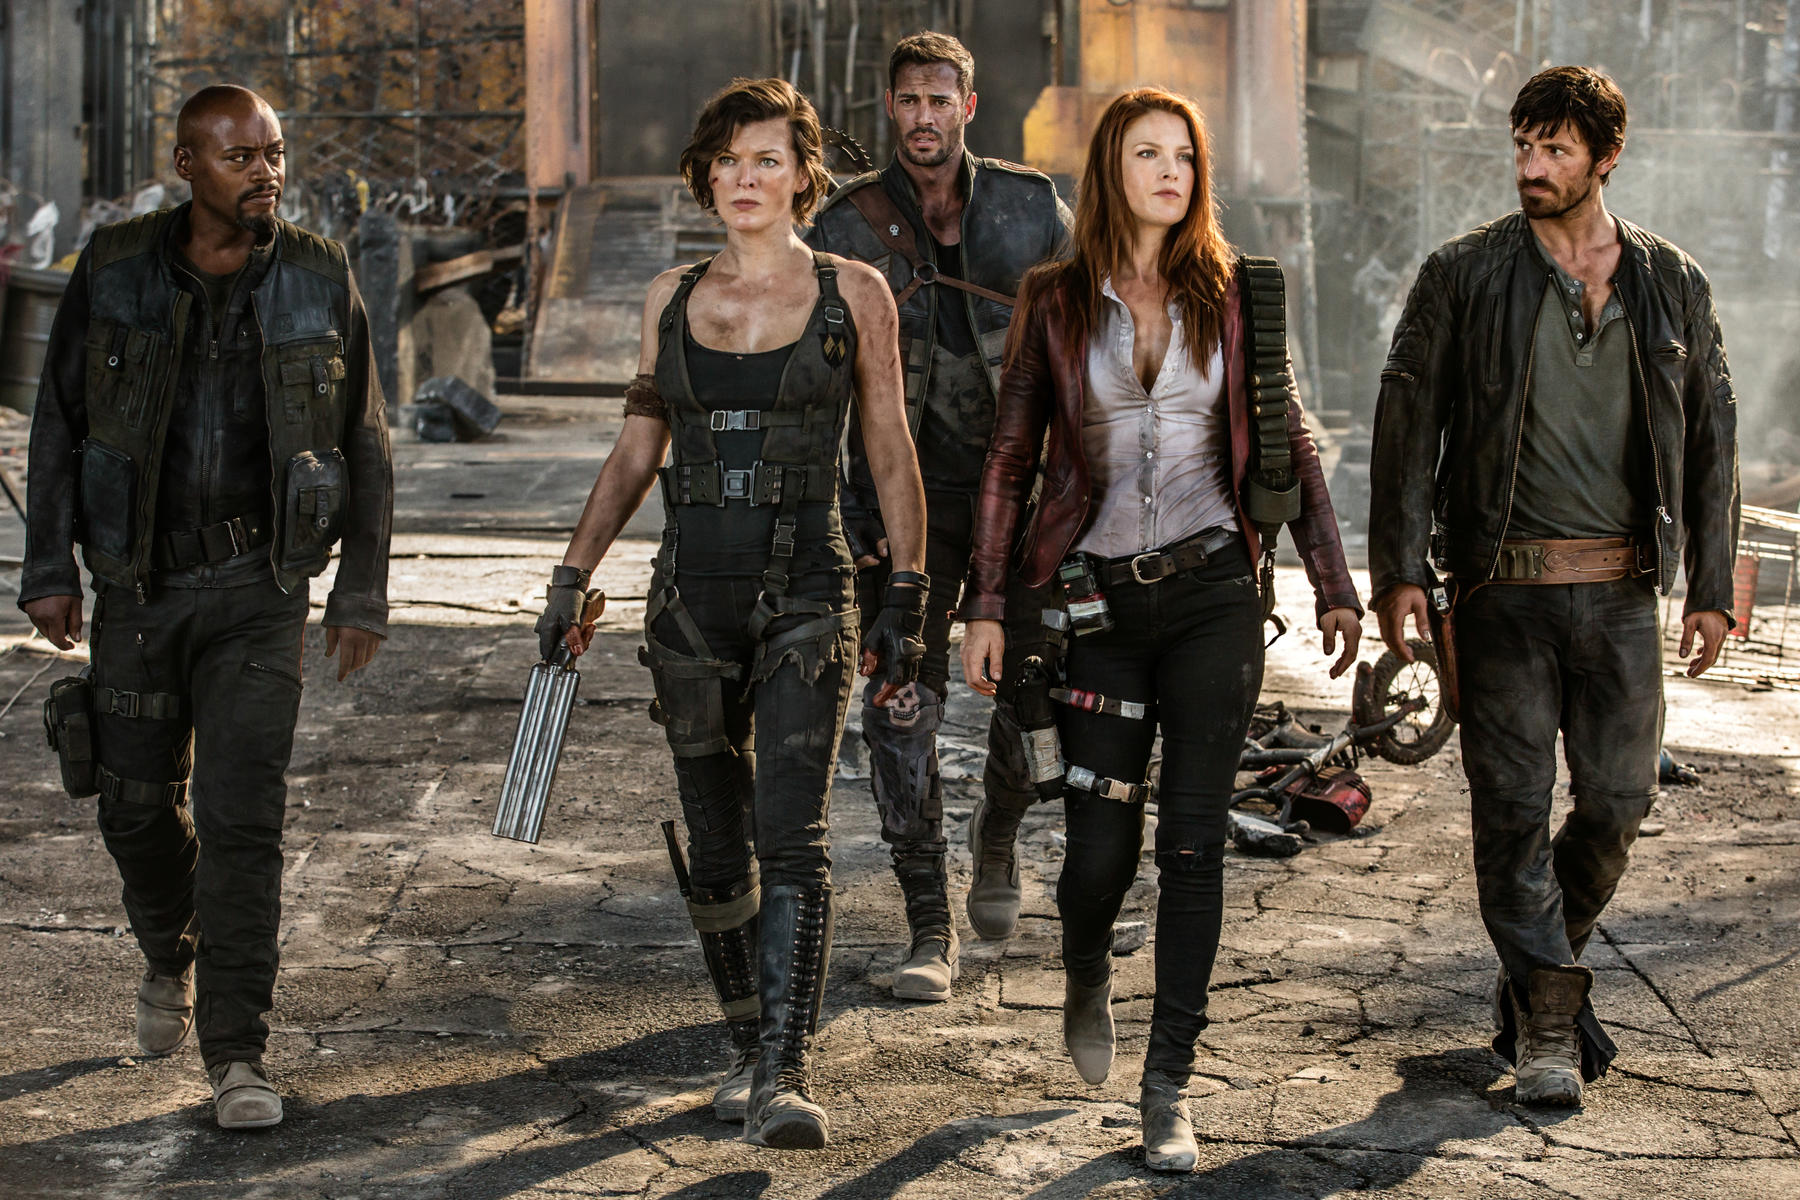 resident-evil-6-the-final-chapter-mit-milla-jovovich-ali-larter-eoin-macken-james-fraser-und-william-levy